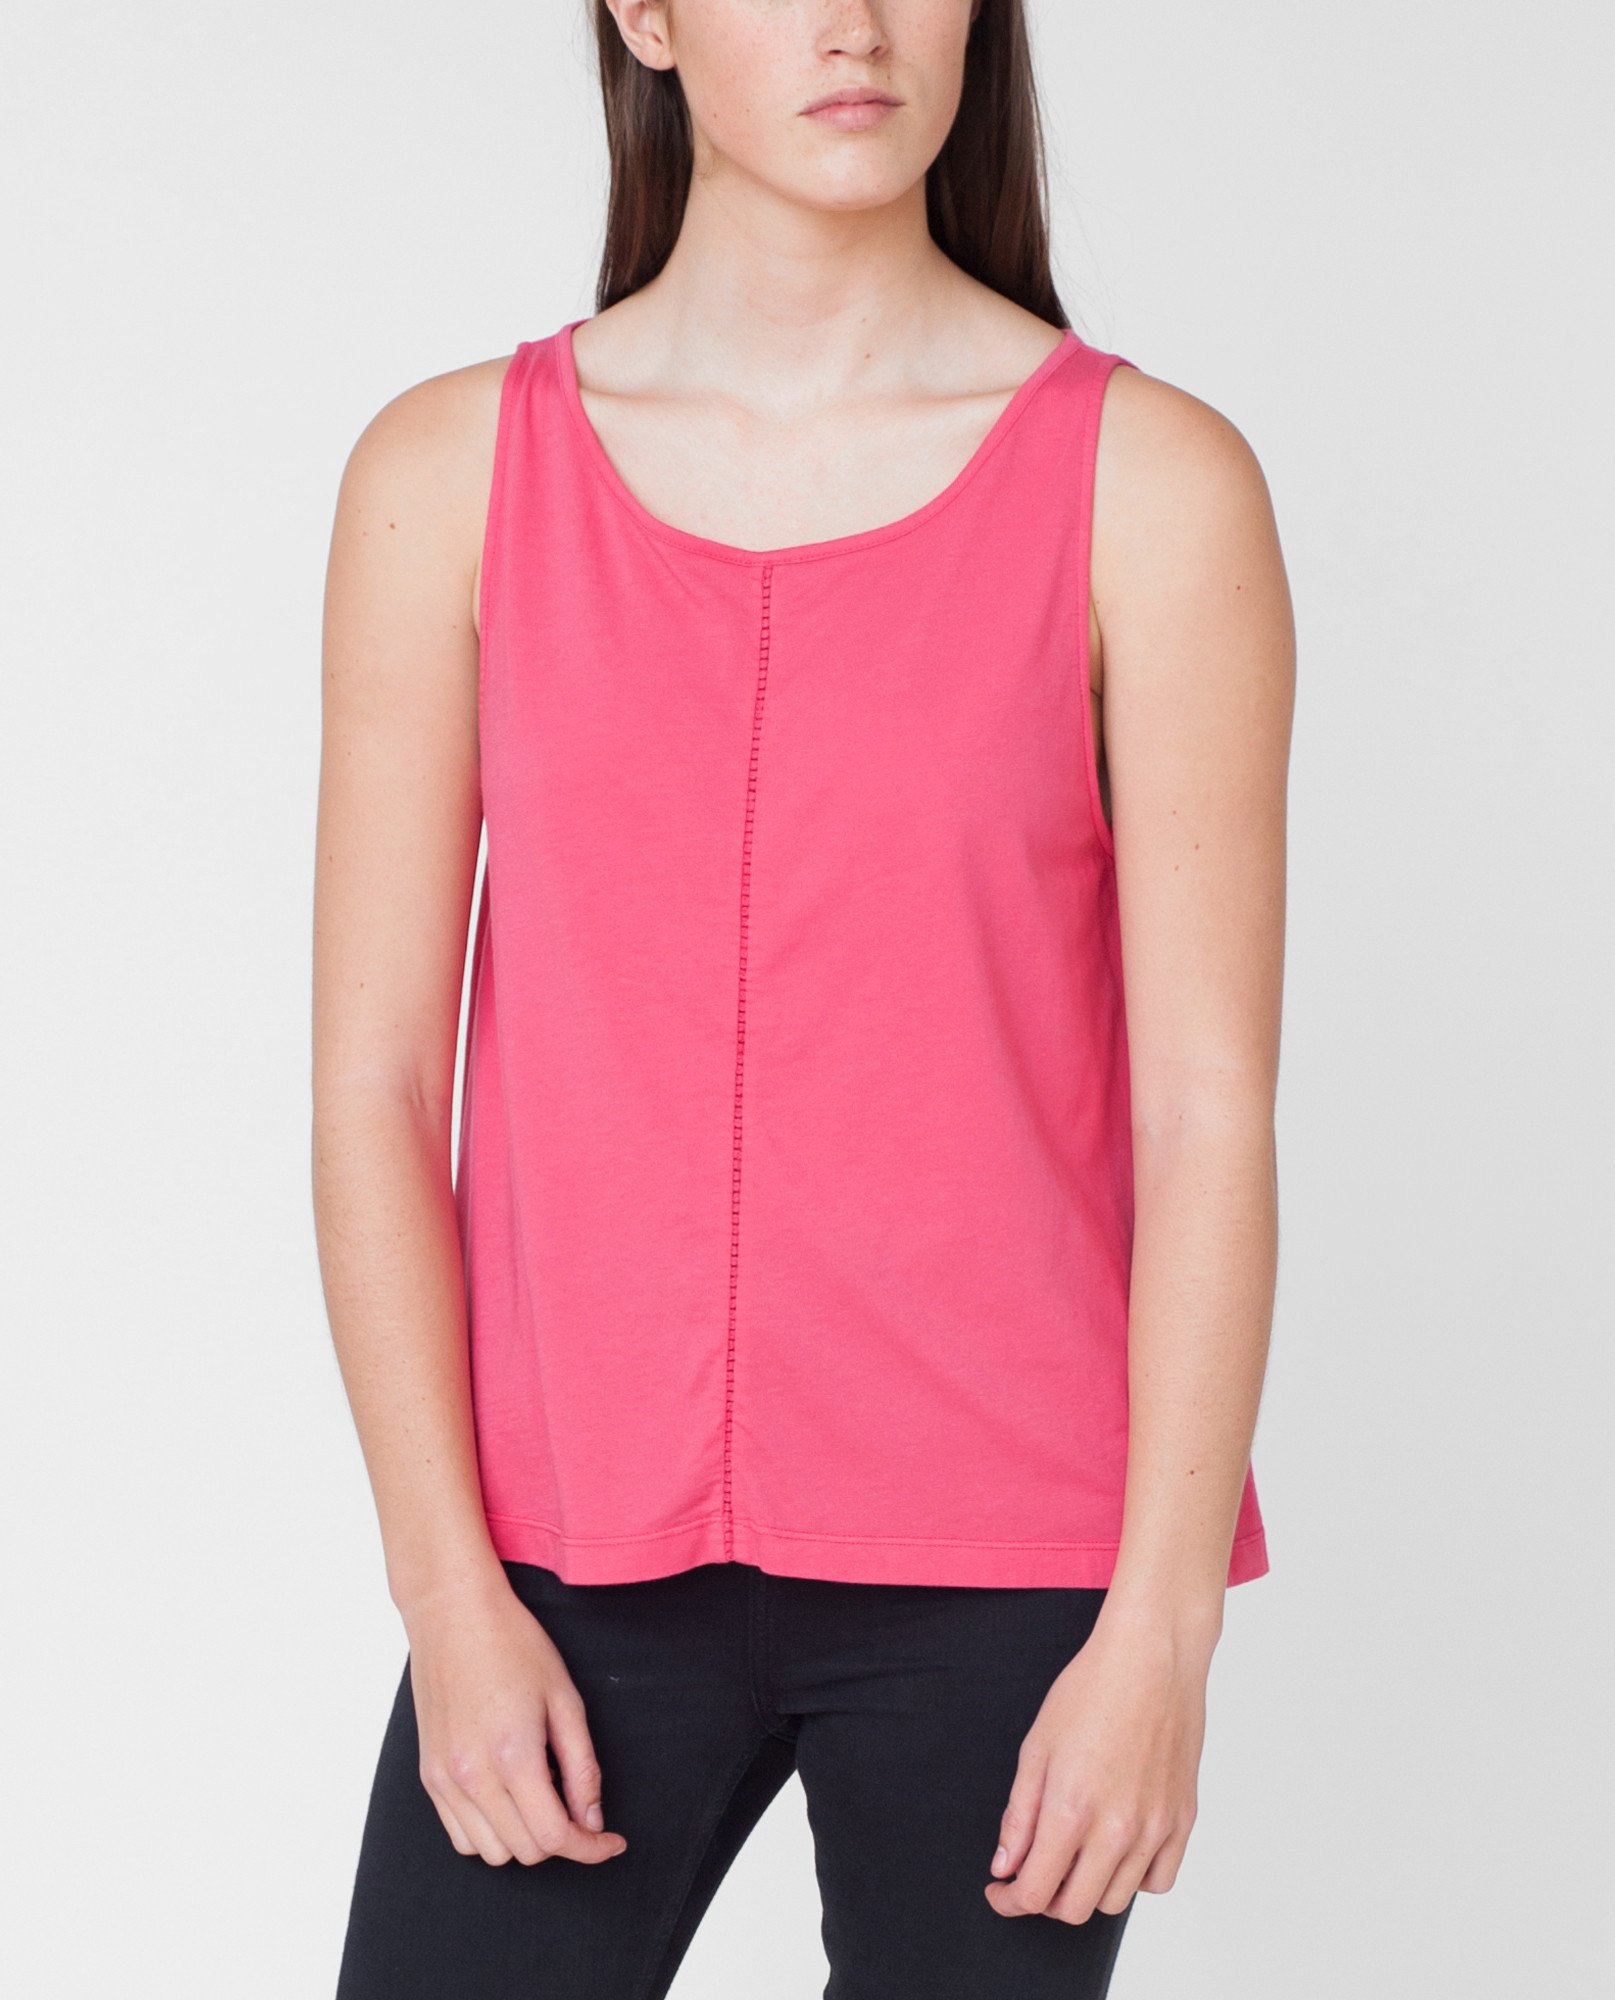 LOGAN CAMI Organic Cotton Top from Beaumont Organic